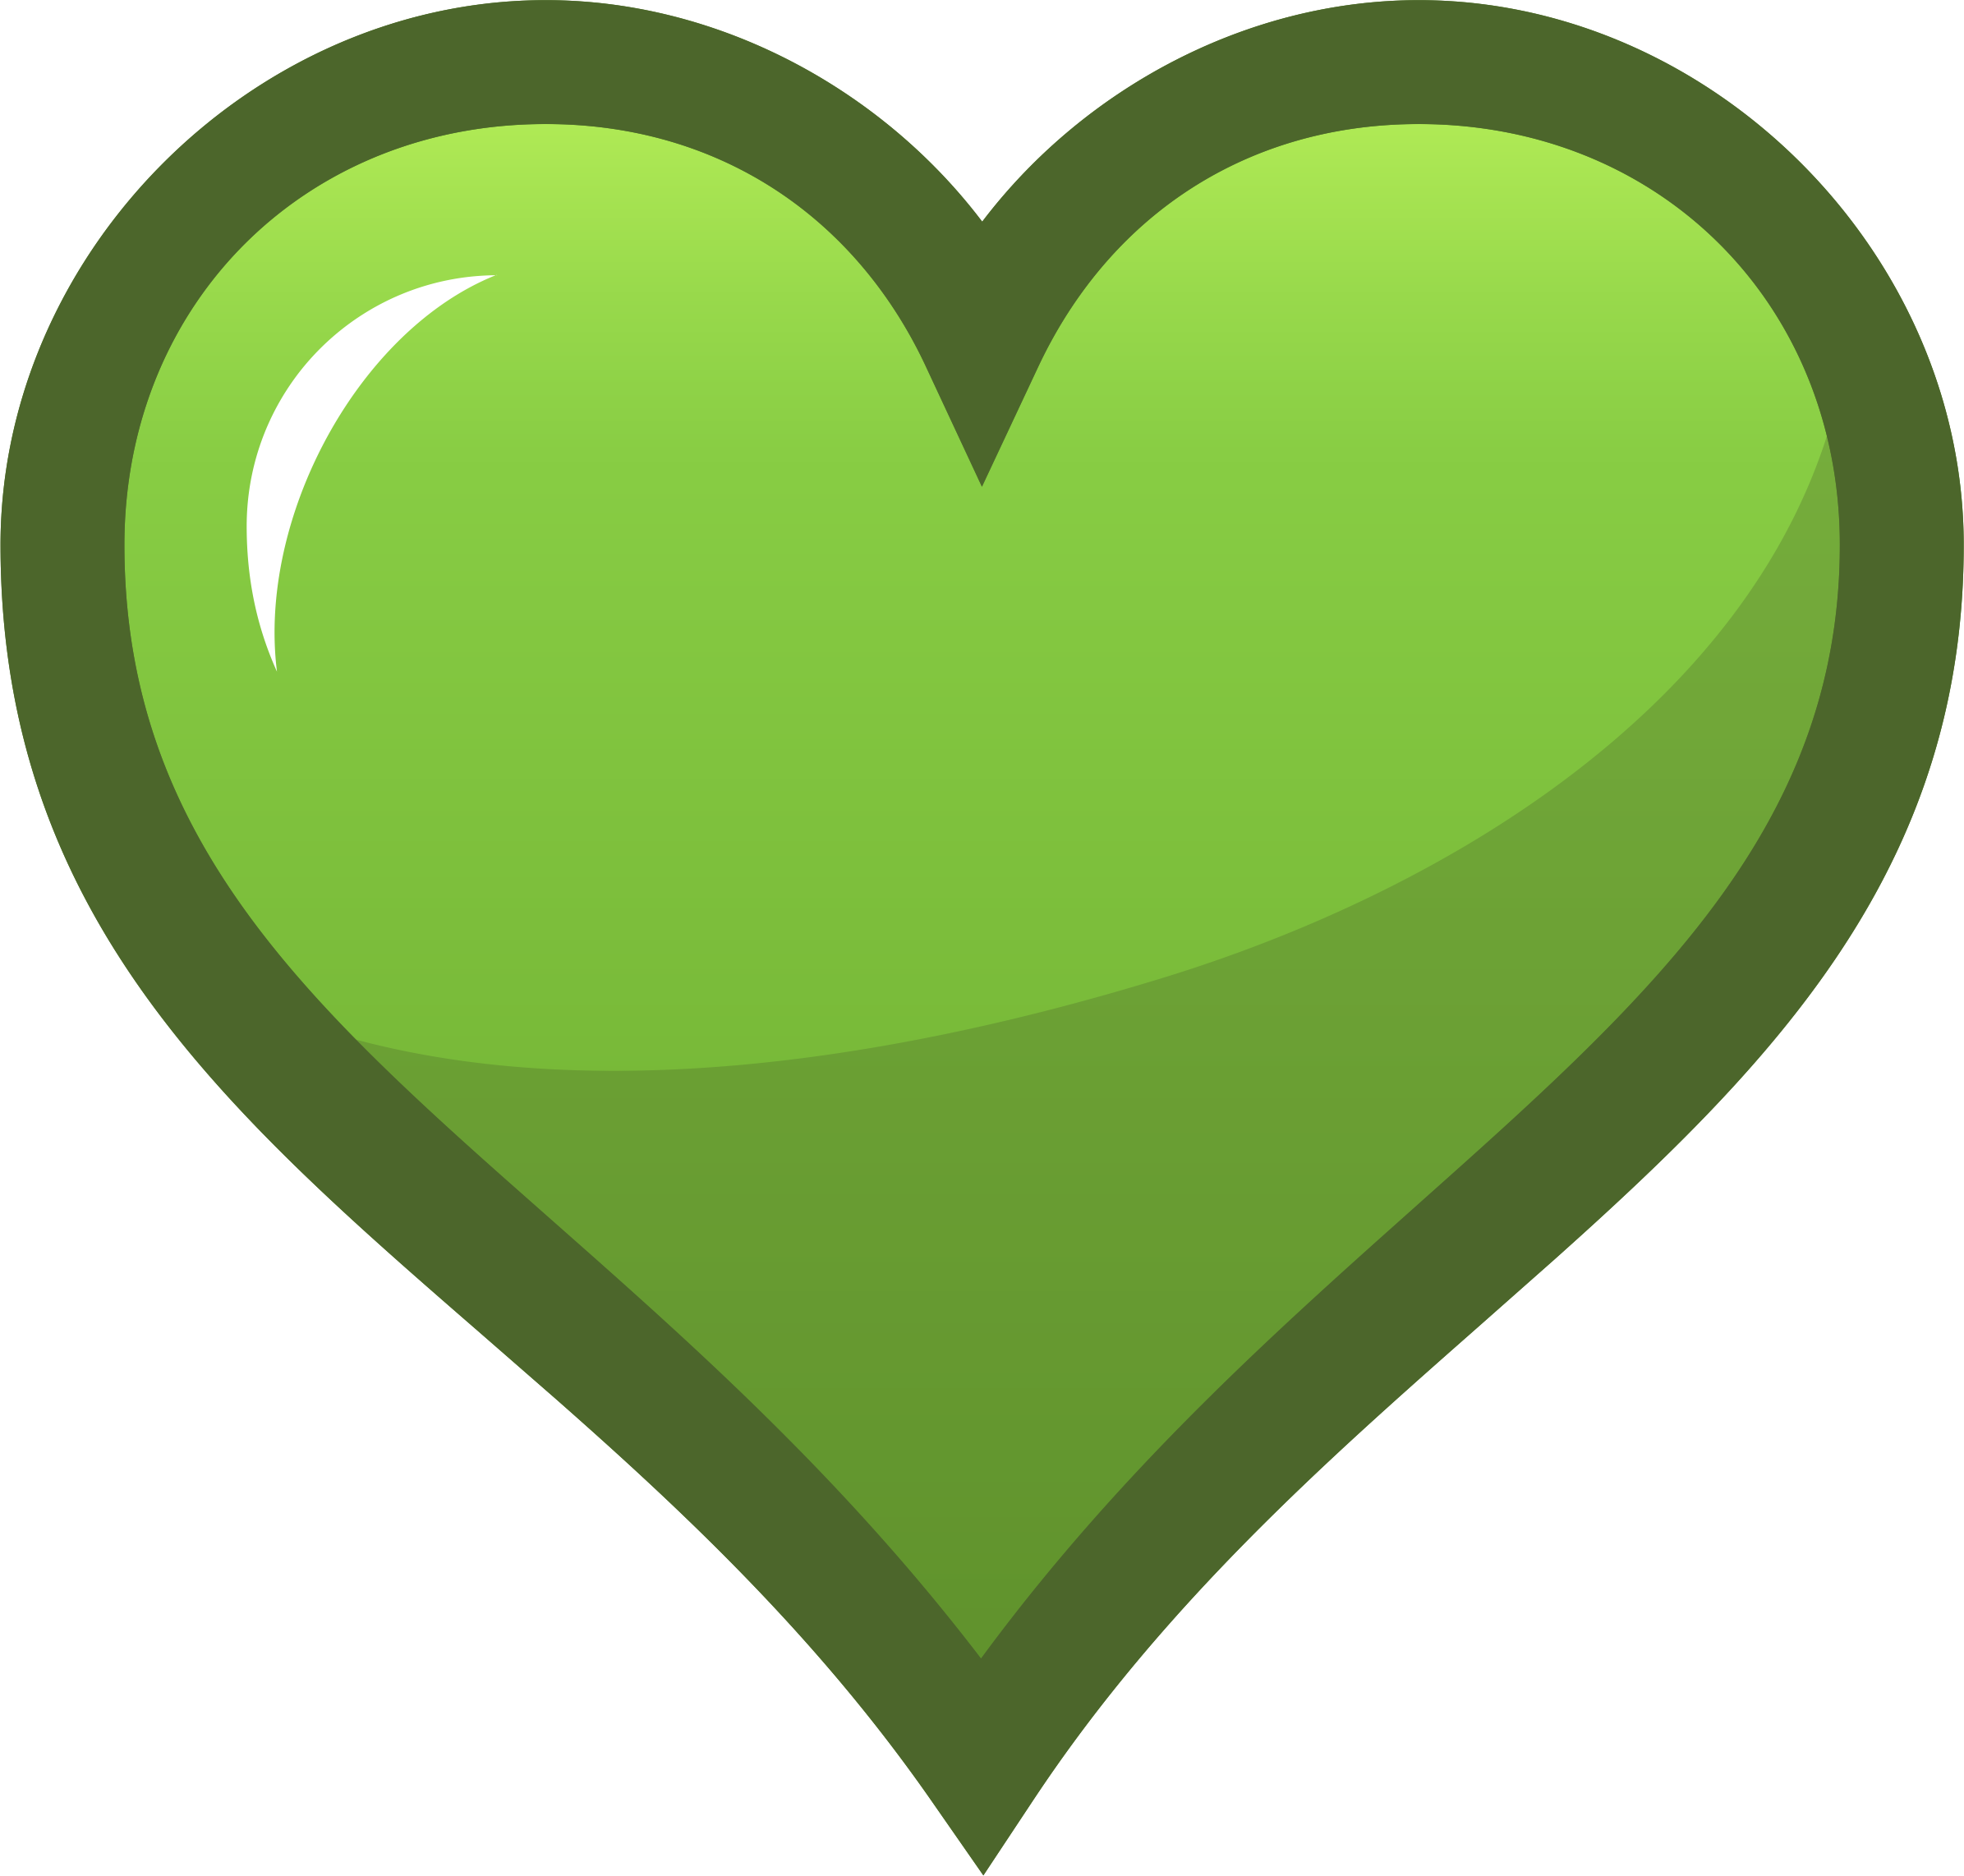 Green heart png. Icon icons free and